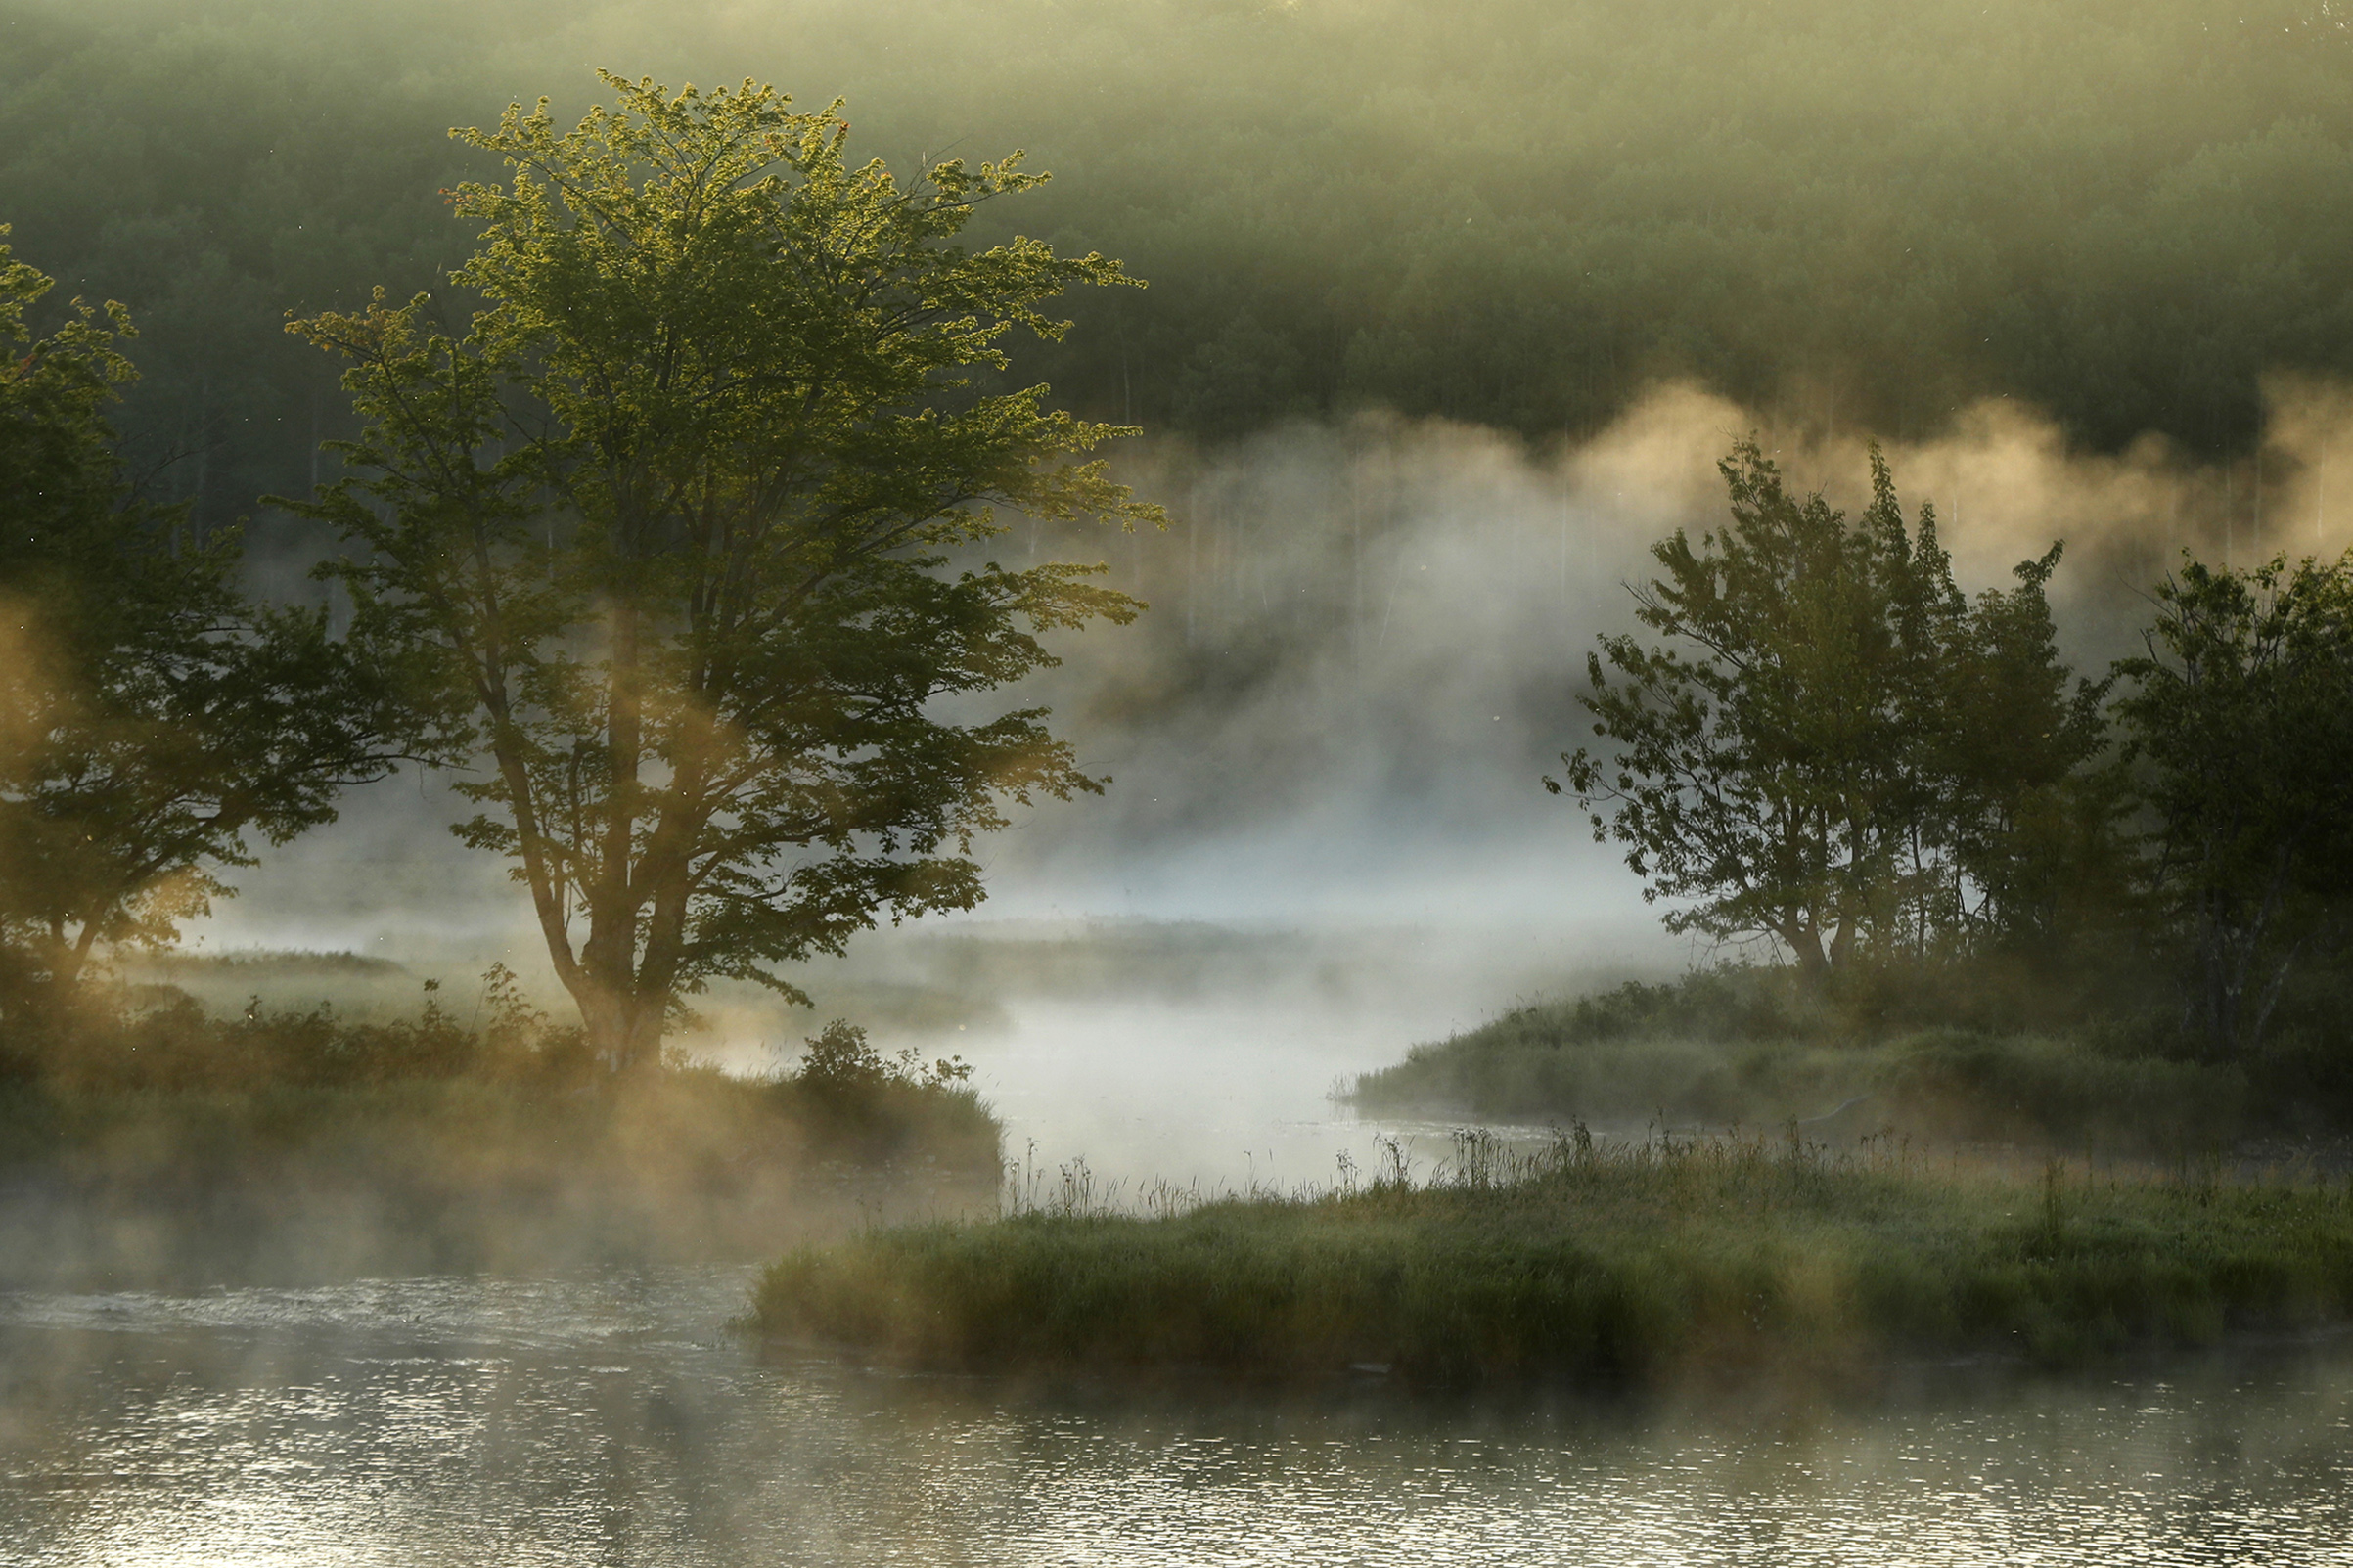 Fog rises from the Penobscot River's East Branch in the Katahdin Woods and Waters National Monument near Patten, Maine, on Aug. 10, 2017.